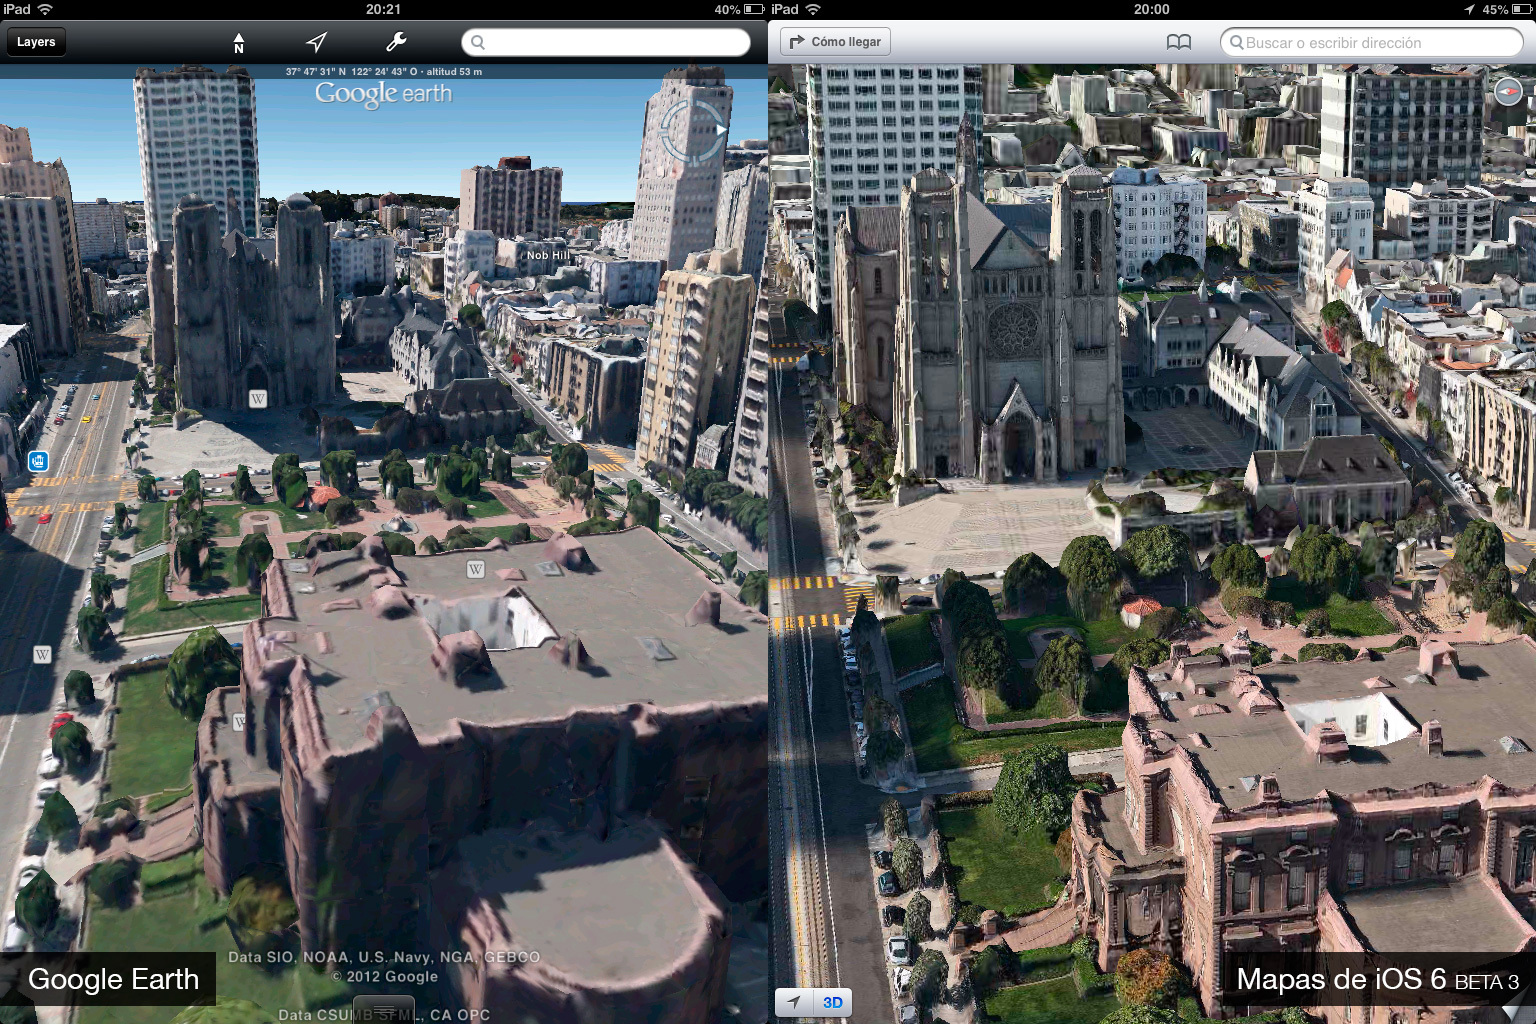 Google Earth 7.0 contra Mapas de iOS 6 (beta 3)